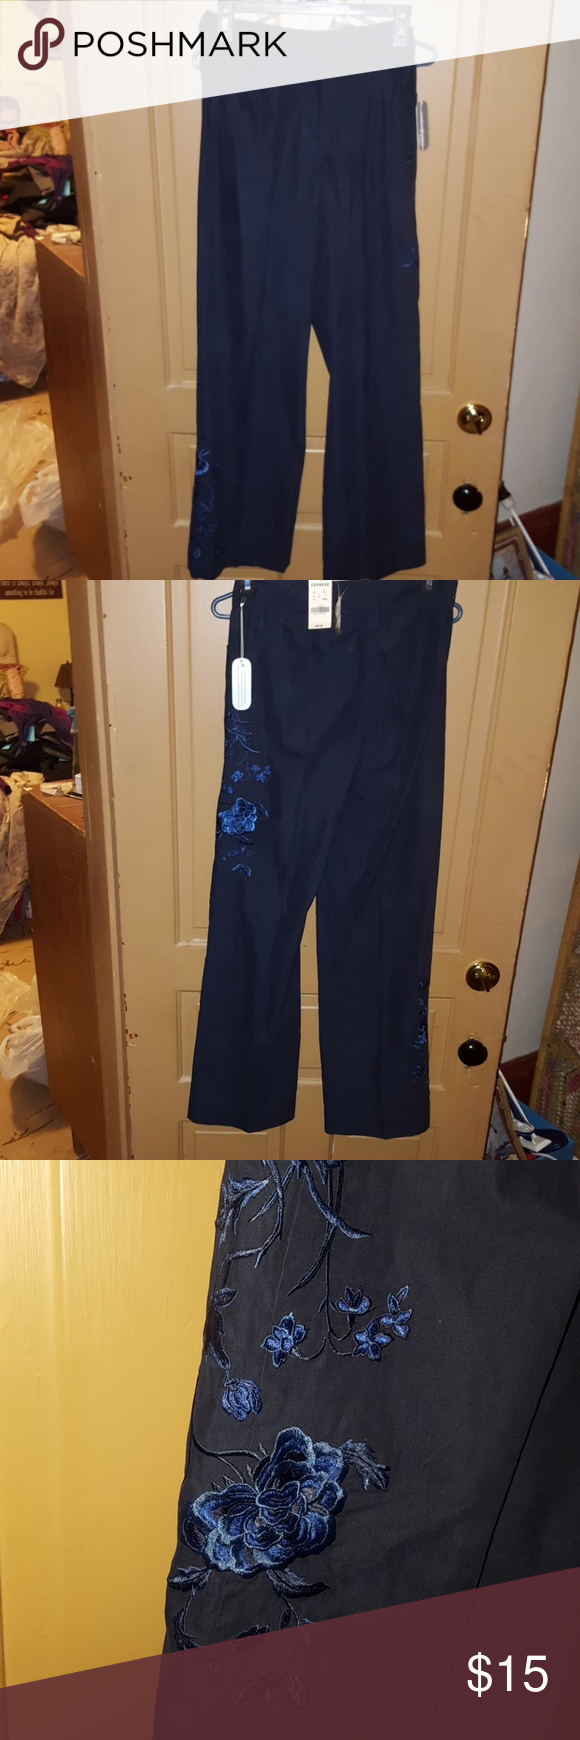 Nwt Express Brand Pants With Blue Embroidery Boutique